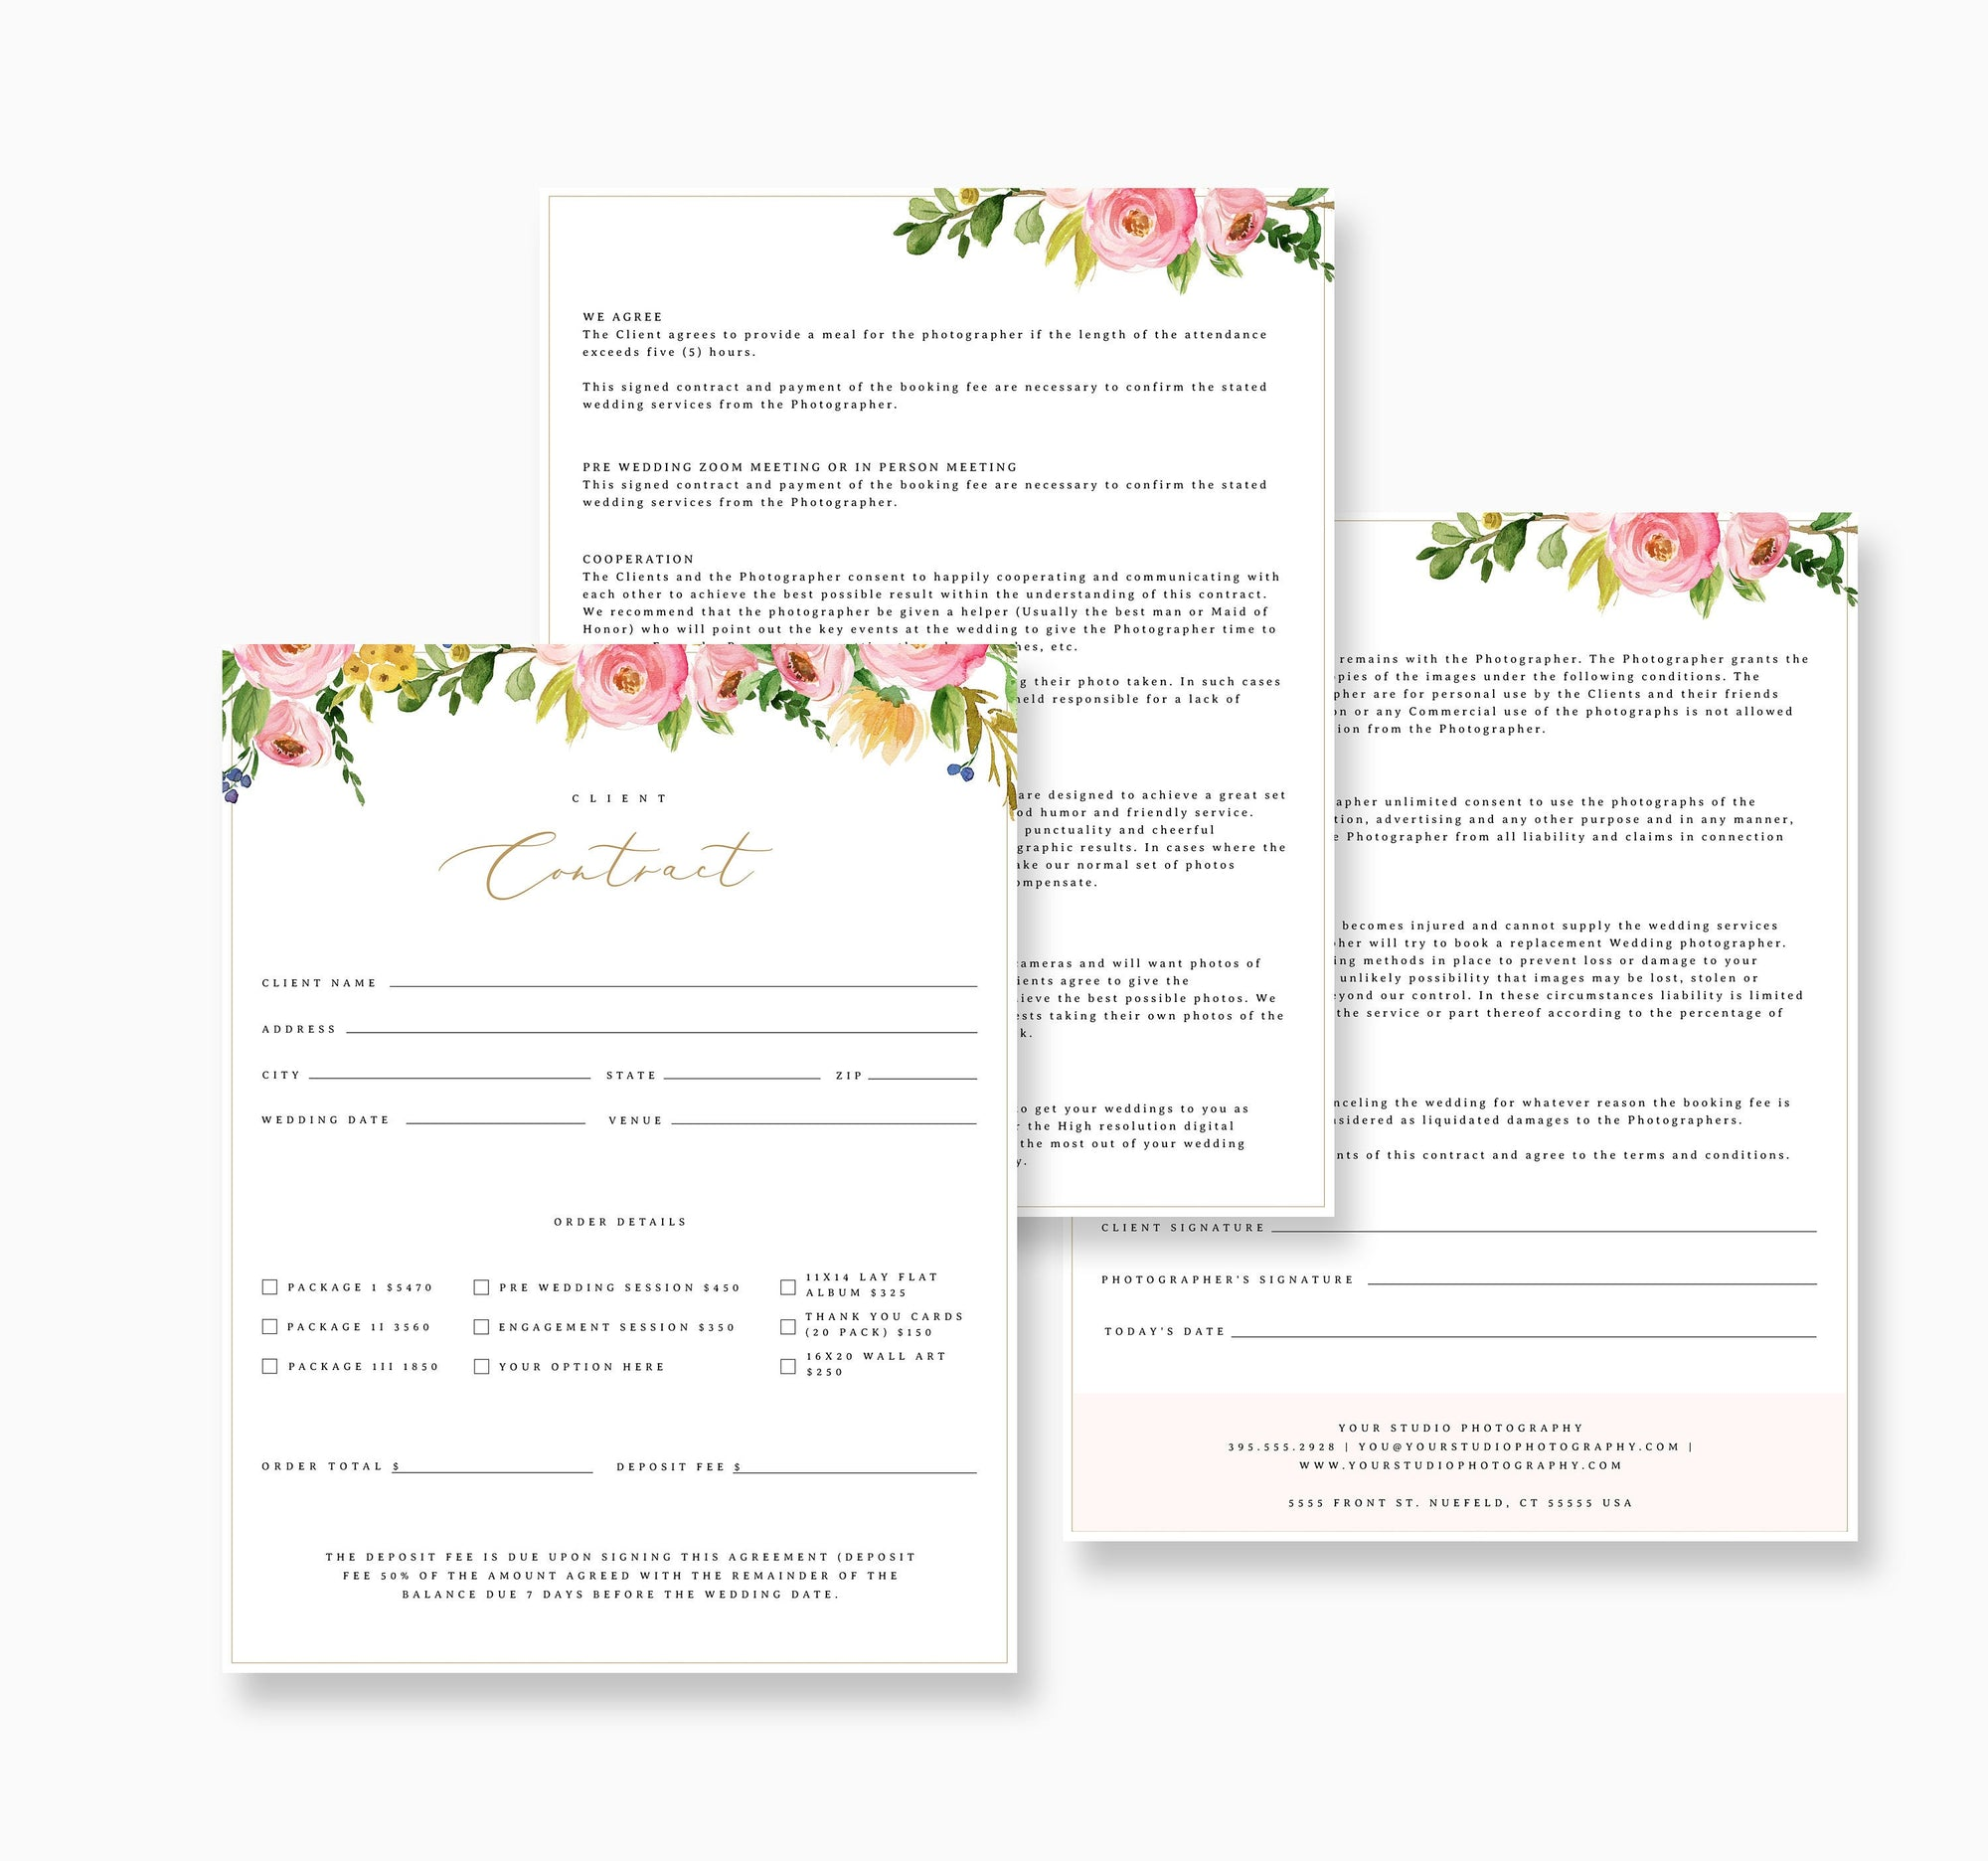 Photography Agreement Form, Contract Form Template, Editable Photography Template, Contract Template, Contract Agreement Template